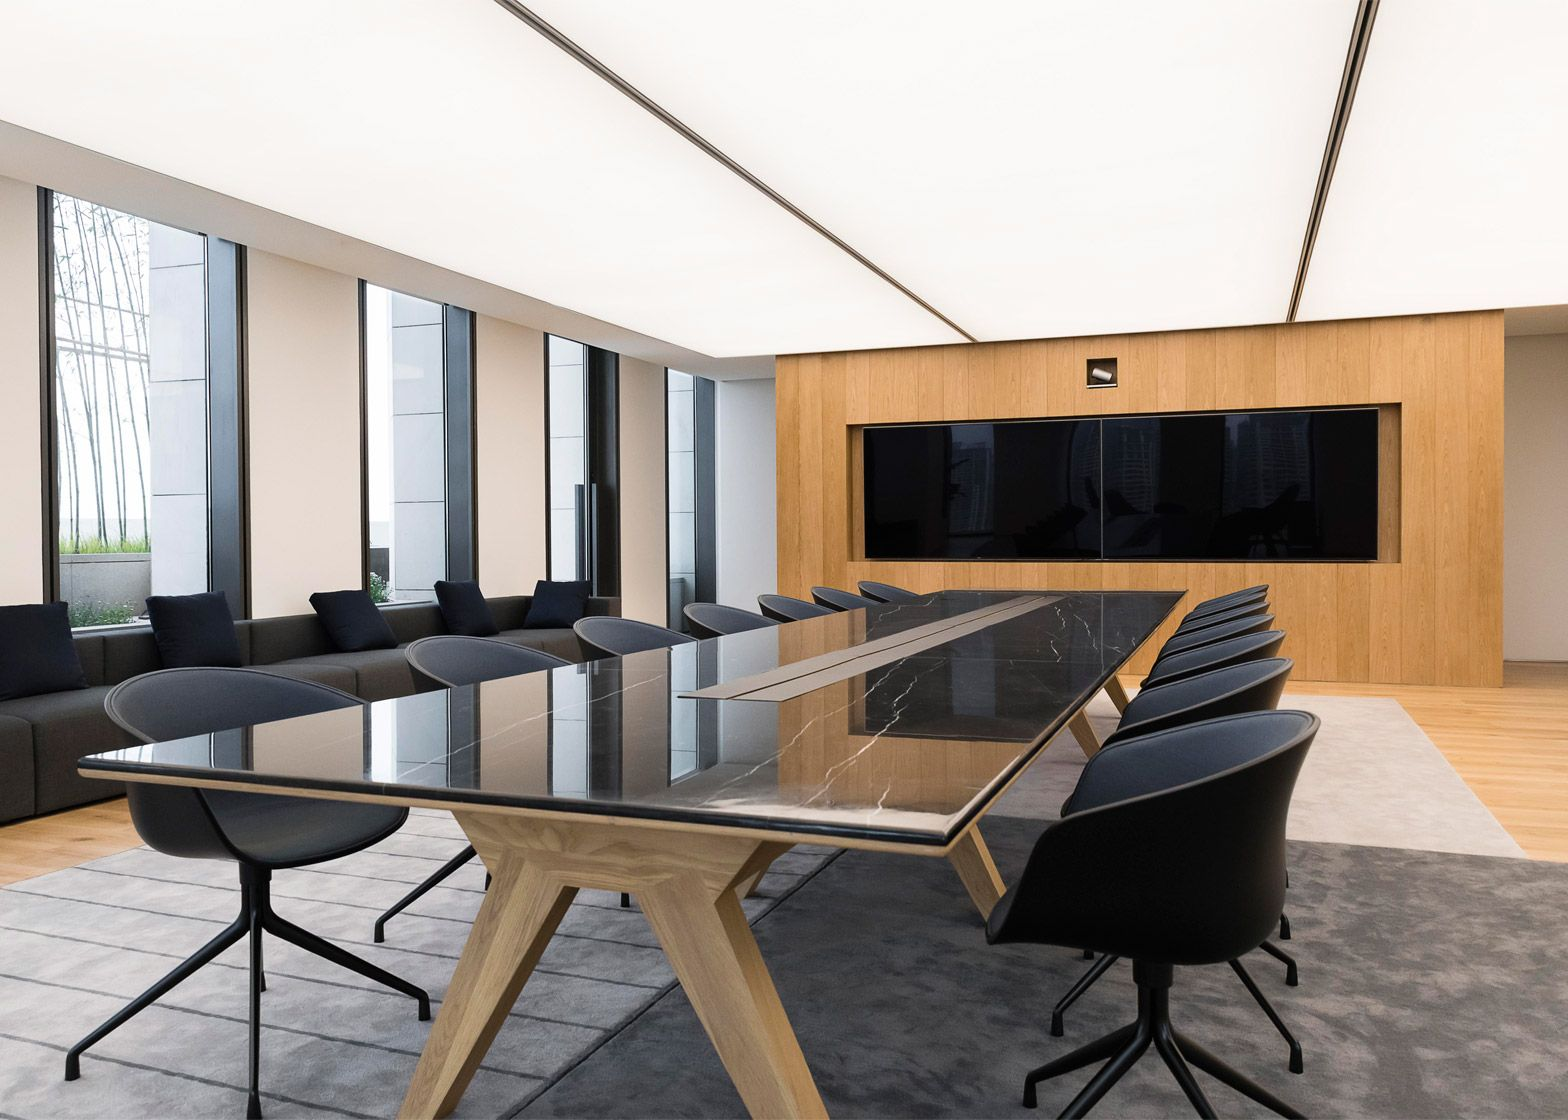 office interior design concepts. Office Furniture Interior Design Concepts